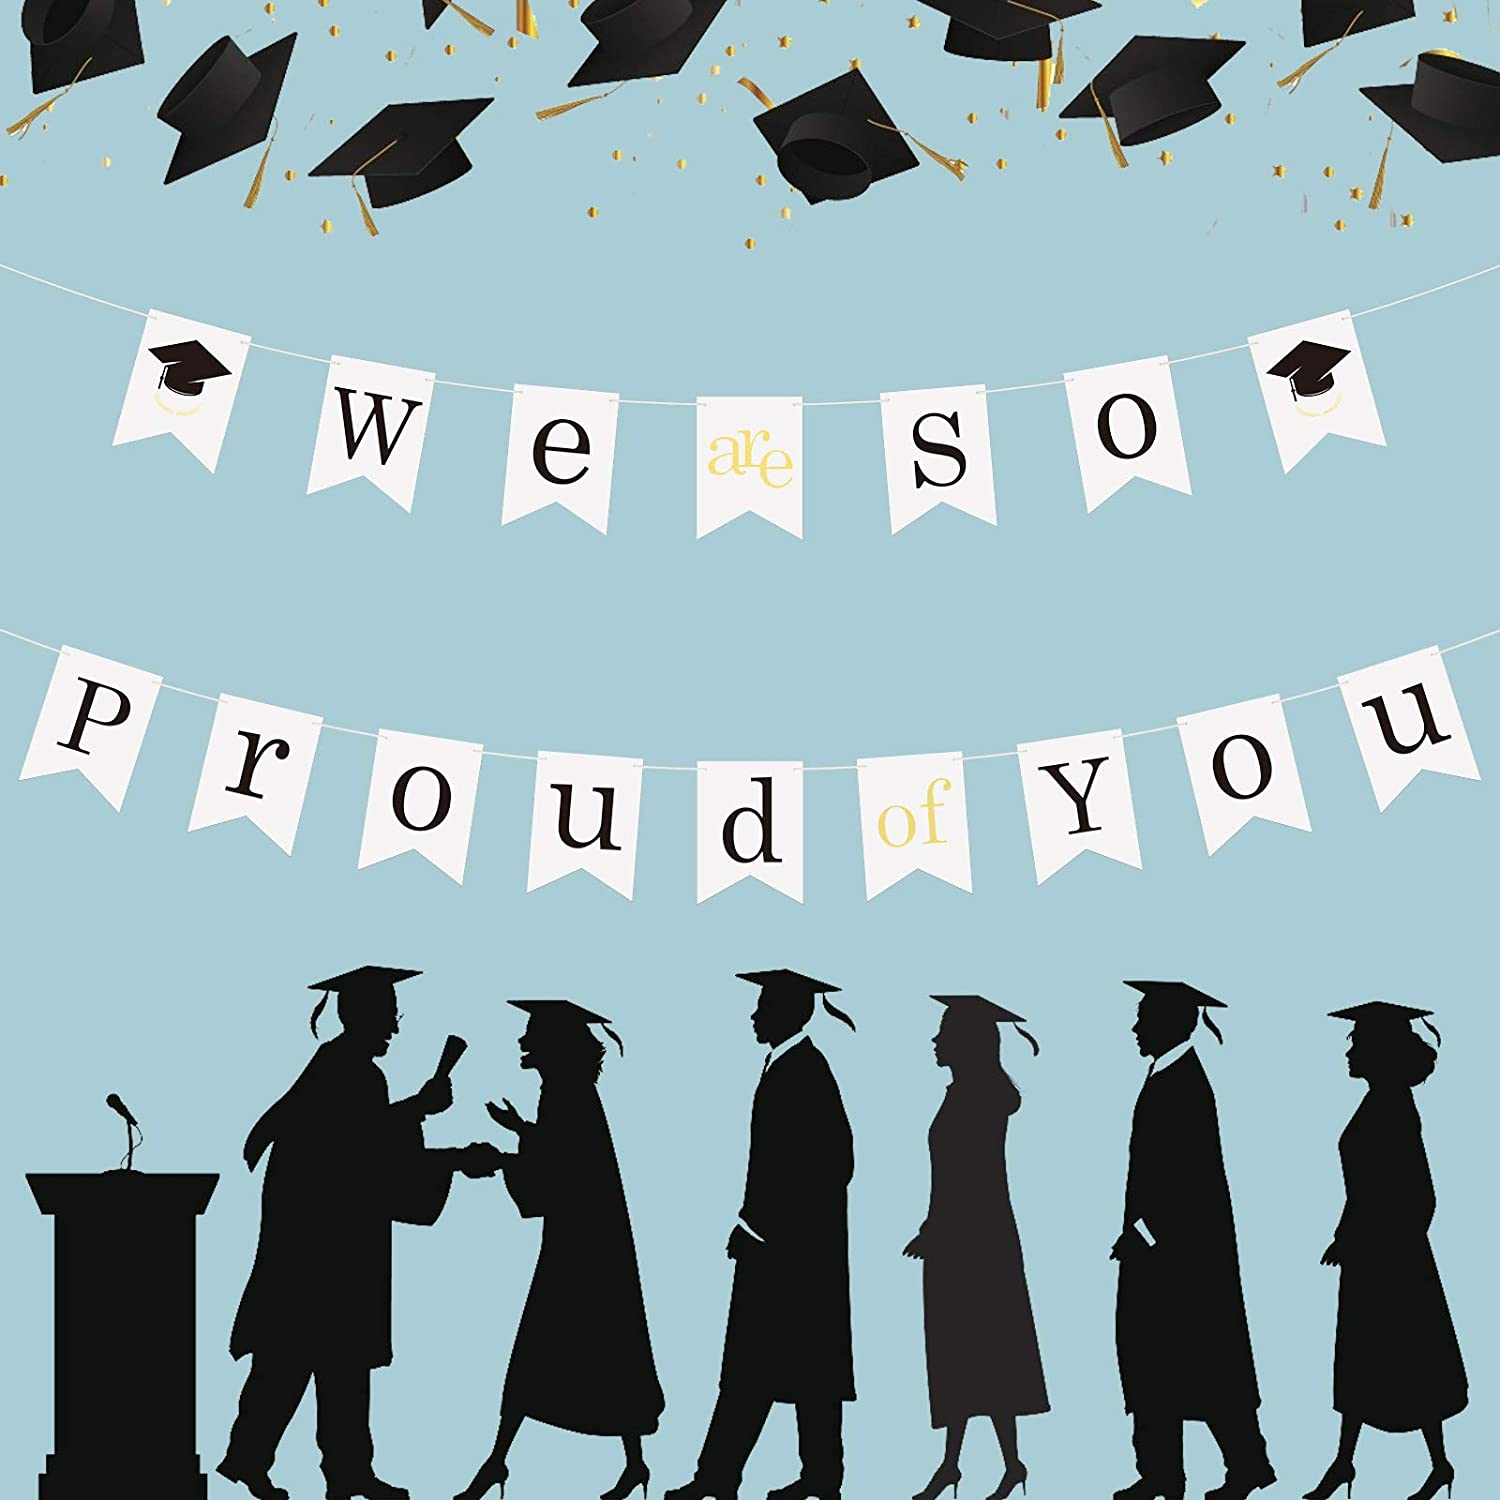 KATOOM Graduation Bunting,WE are SO Proud of You Banner 2020 Congrats Grad Party Swallowtail Flag Decorations Supplies for College High School Photo Backdrop Hanging Props (White)